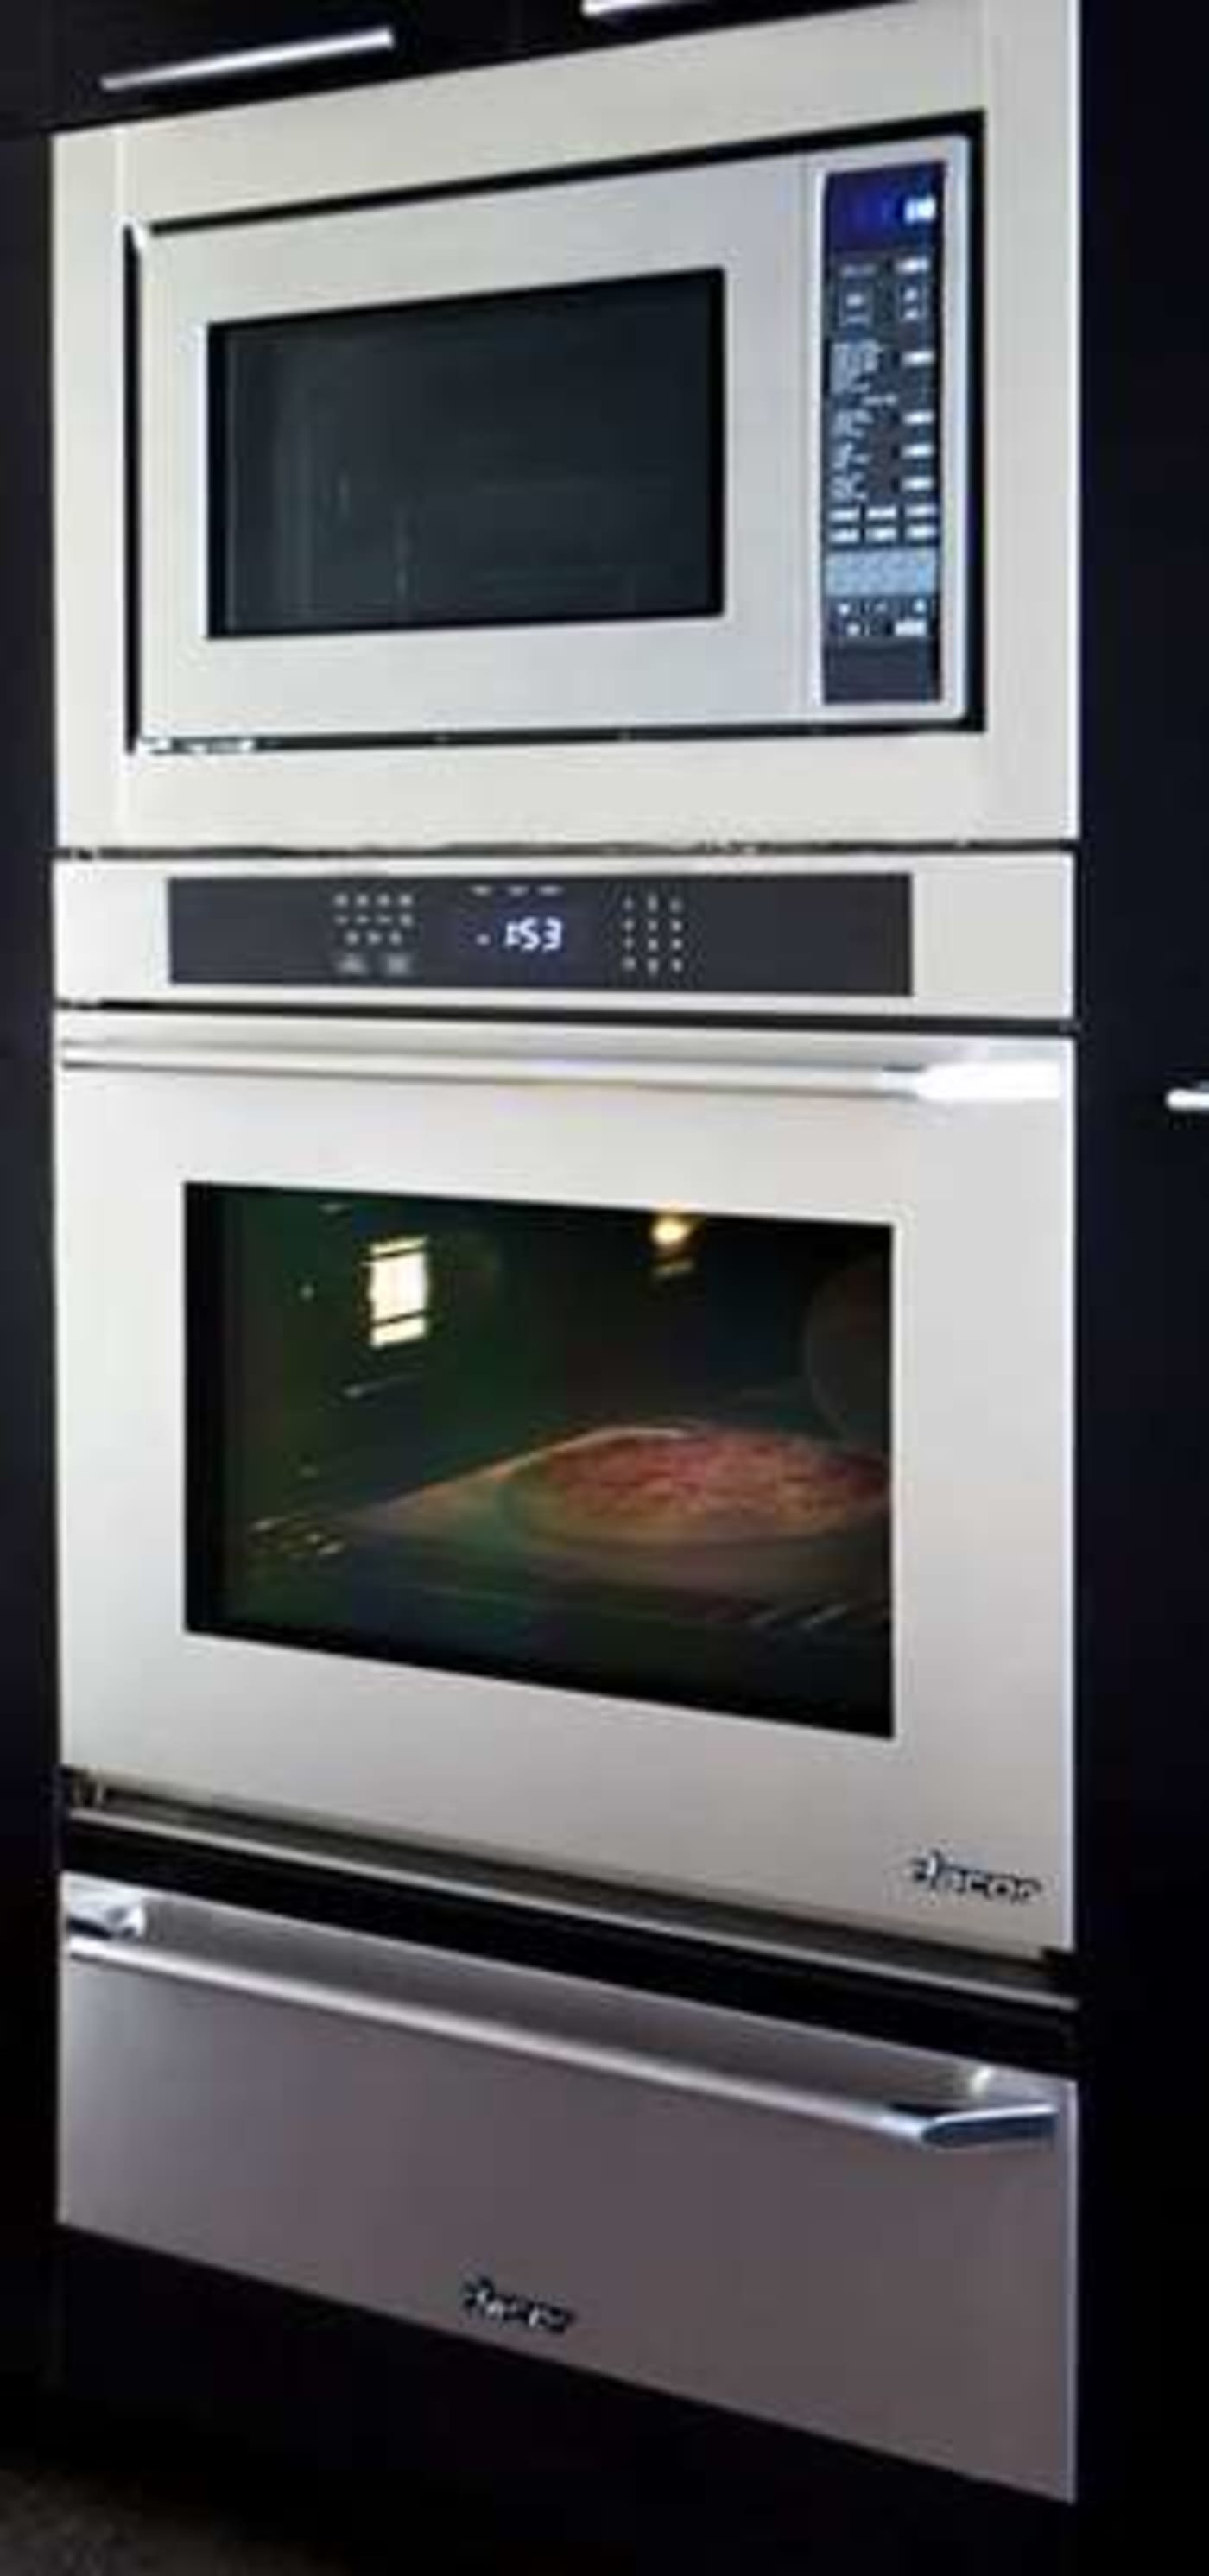 Rno130s By Dacor Electric Wall Ovens Oven Wiring Diagram